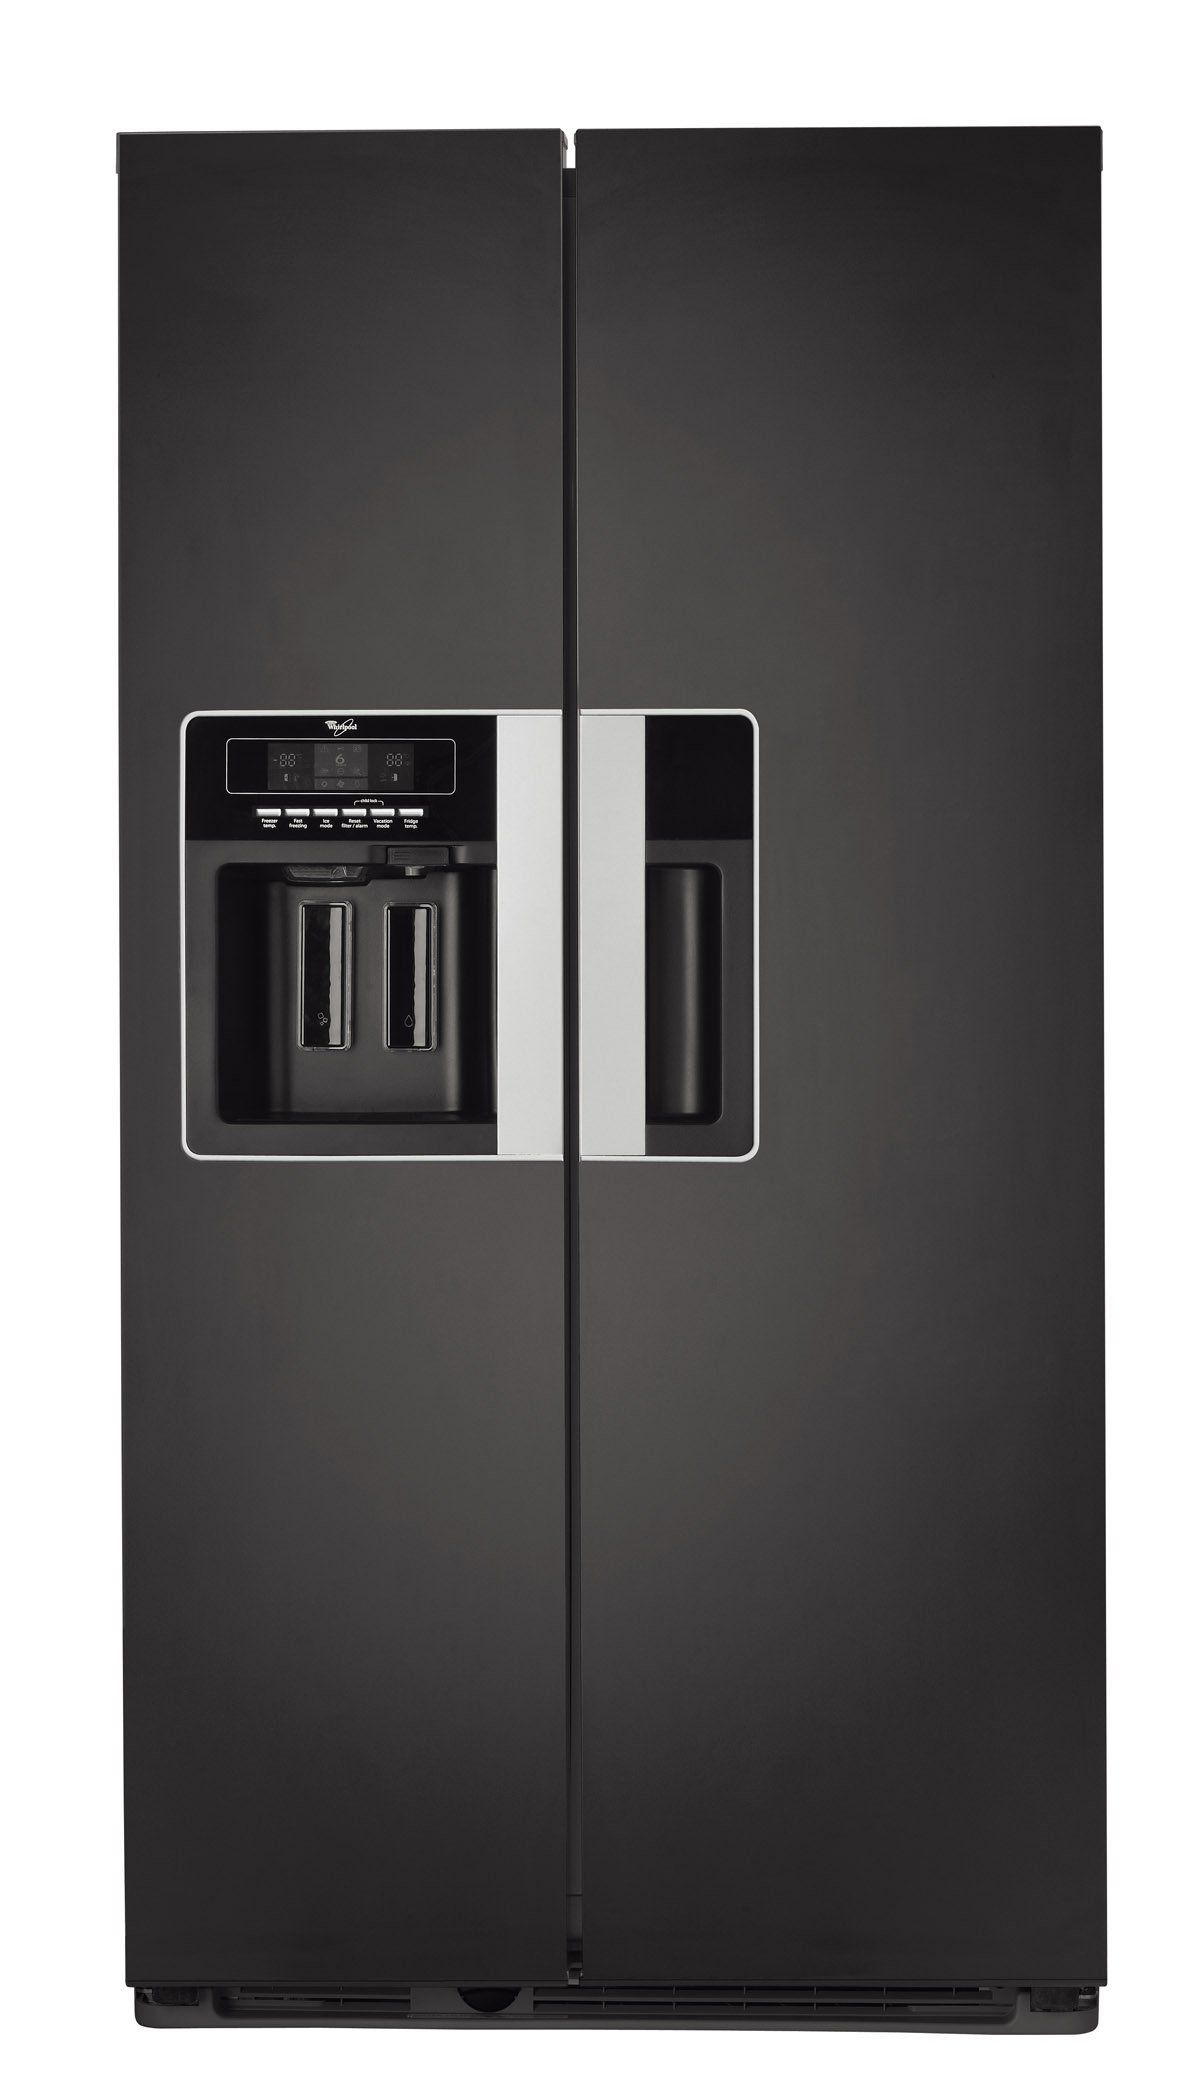 Refrigerateur Americain Whirlpool Wsn5586a N Frigo Design Refrigerateur Americain Frigo Noir